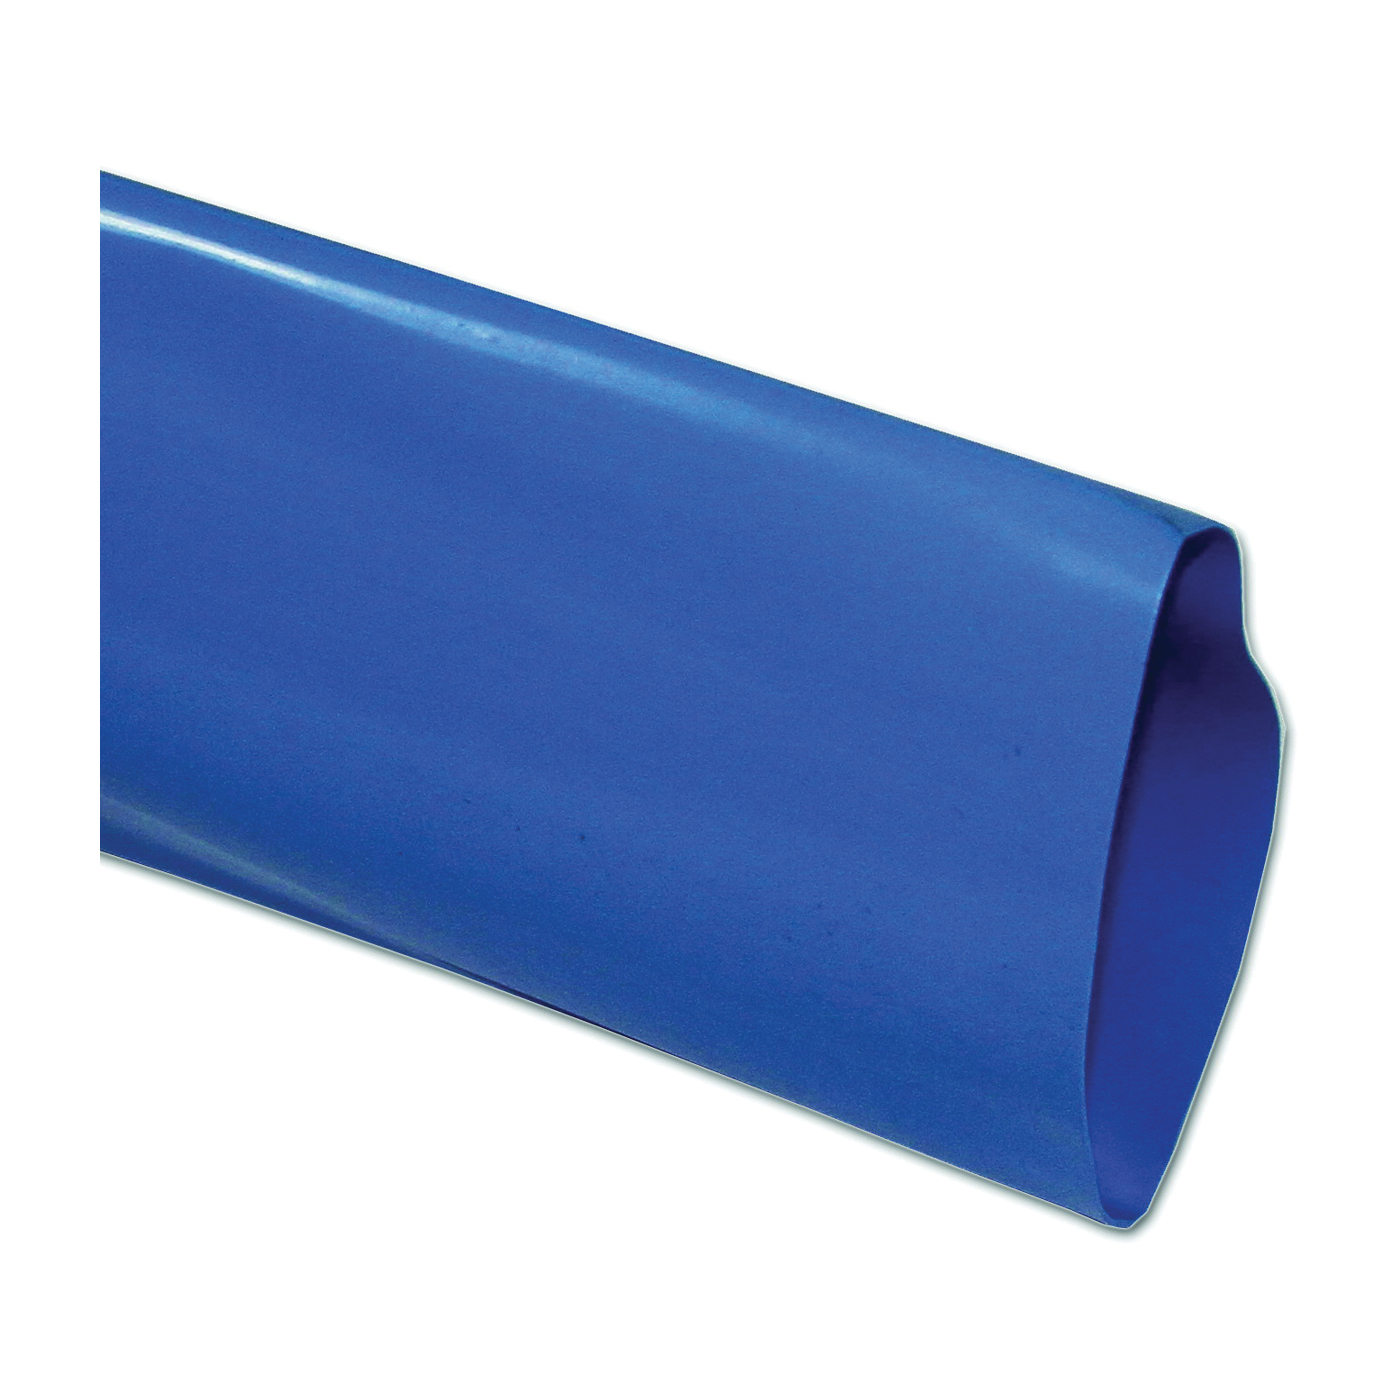 Picture of UDP T36 Series T36005001/RCDR Discharge Hose, 1-1/2 in ID, 150 ft L, Polyethylene, Blue